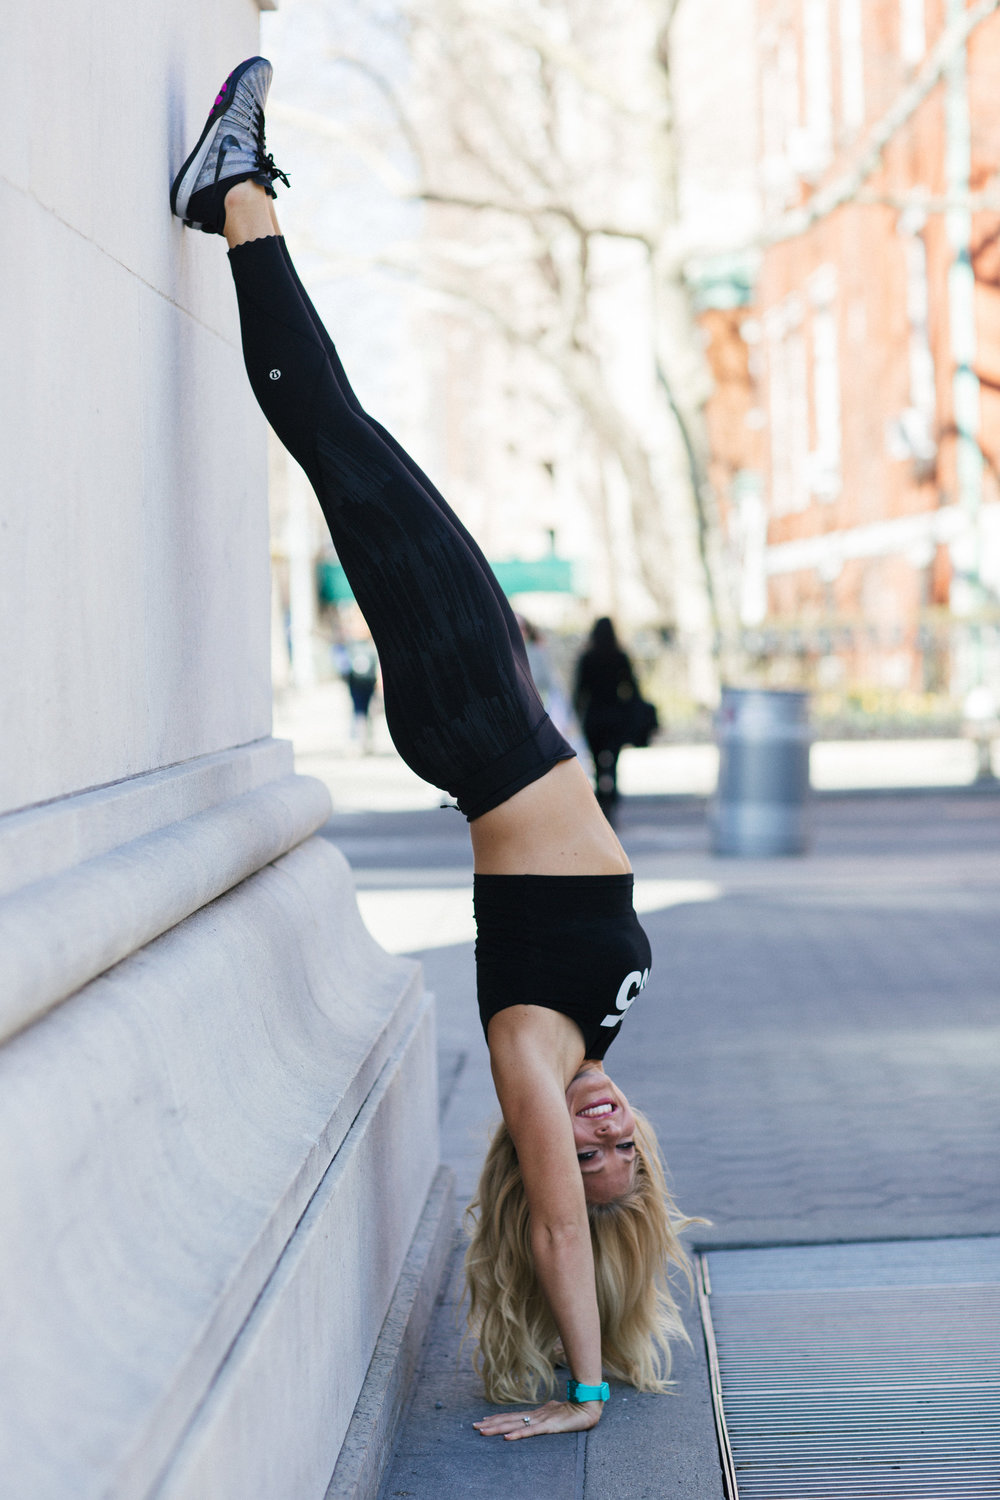 https://www.annakooiman.com/activewear/black-crops-and-high-waisted-tights-turns-your-world-upside-down